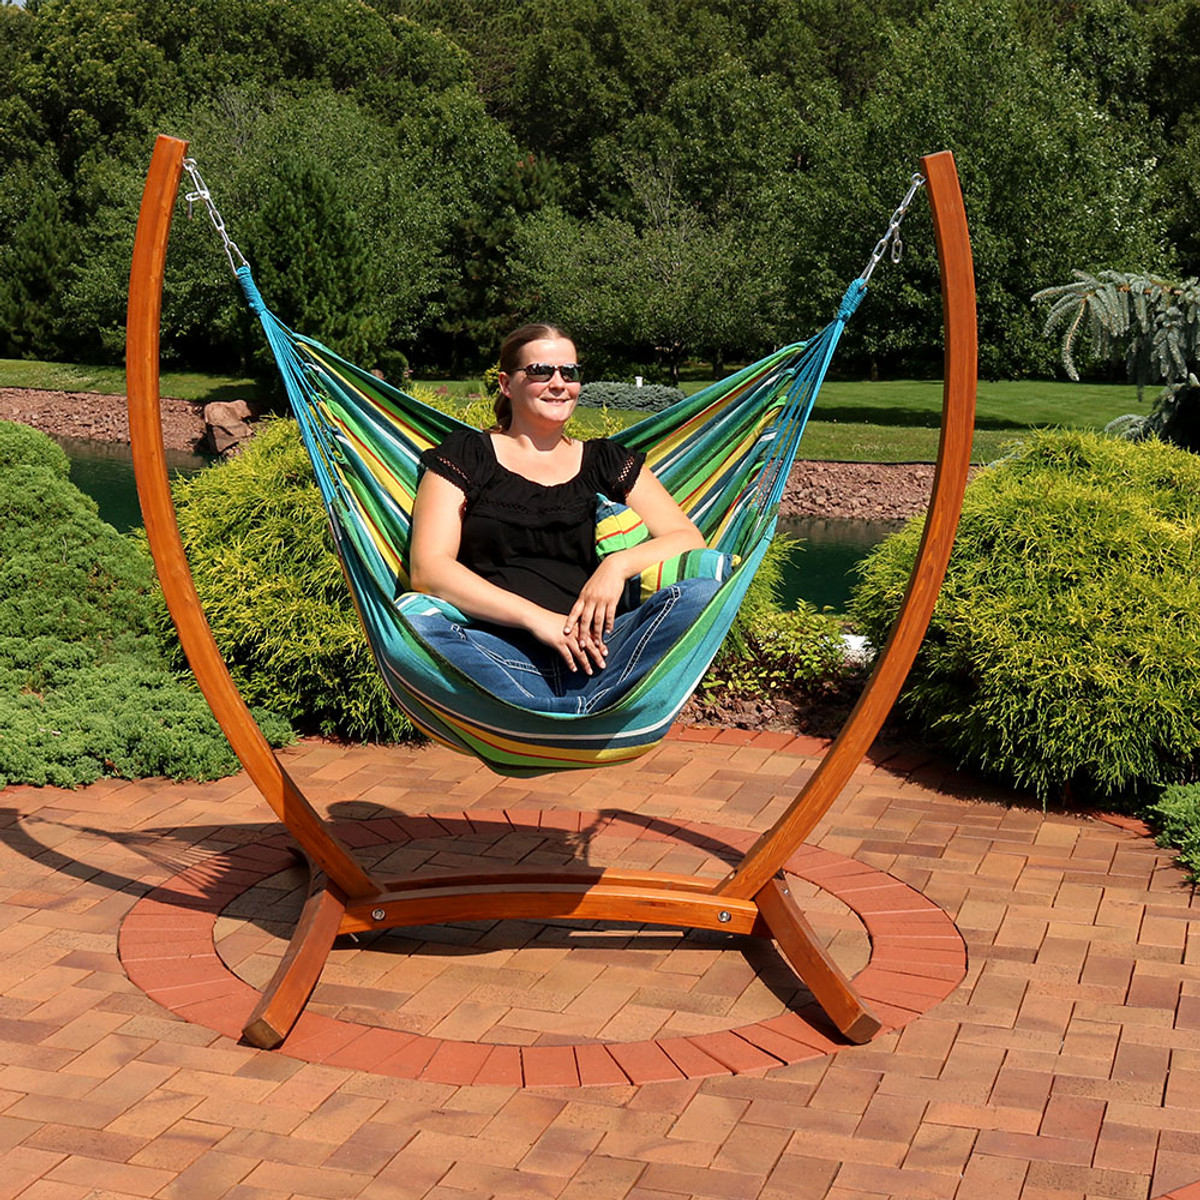 Awe Inspiring Sunnydaze Hanging Hammock Chair Swing With Sturdy Space Short Links Chair Design For Home Short Linksinfo